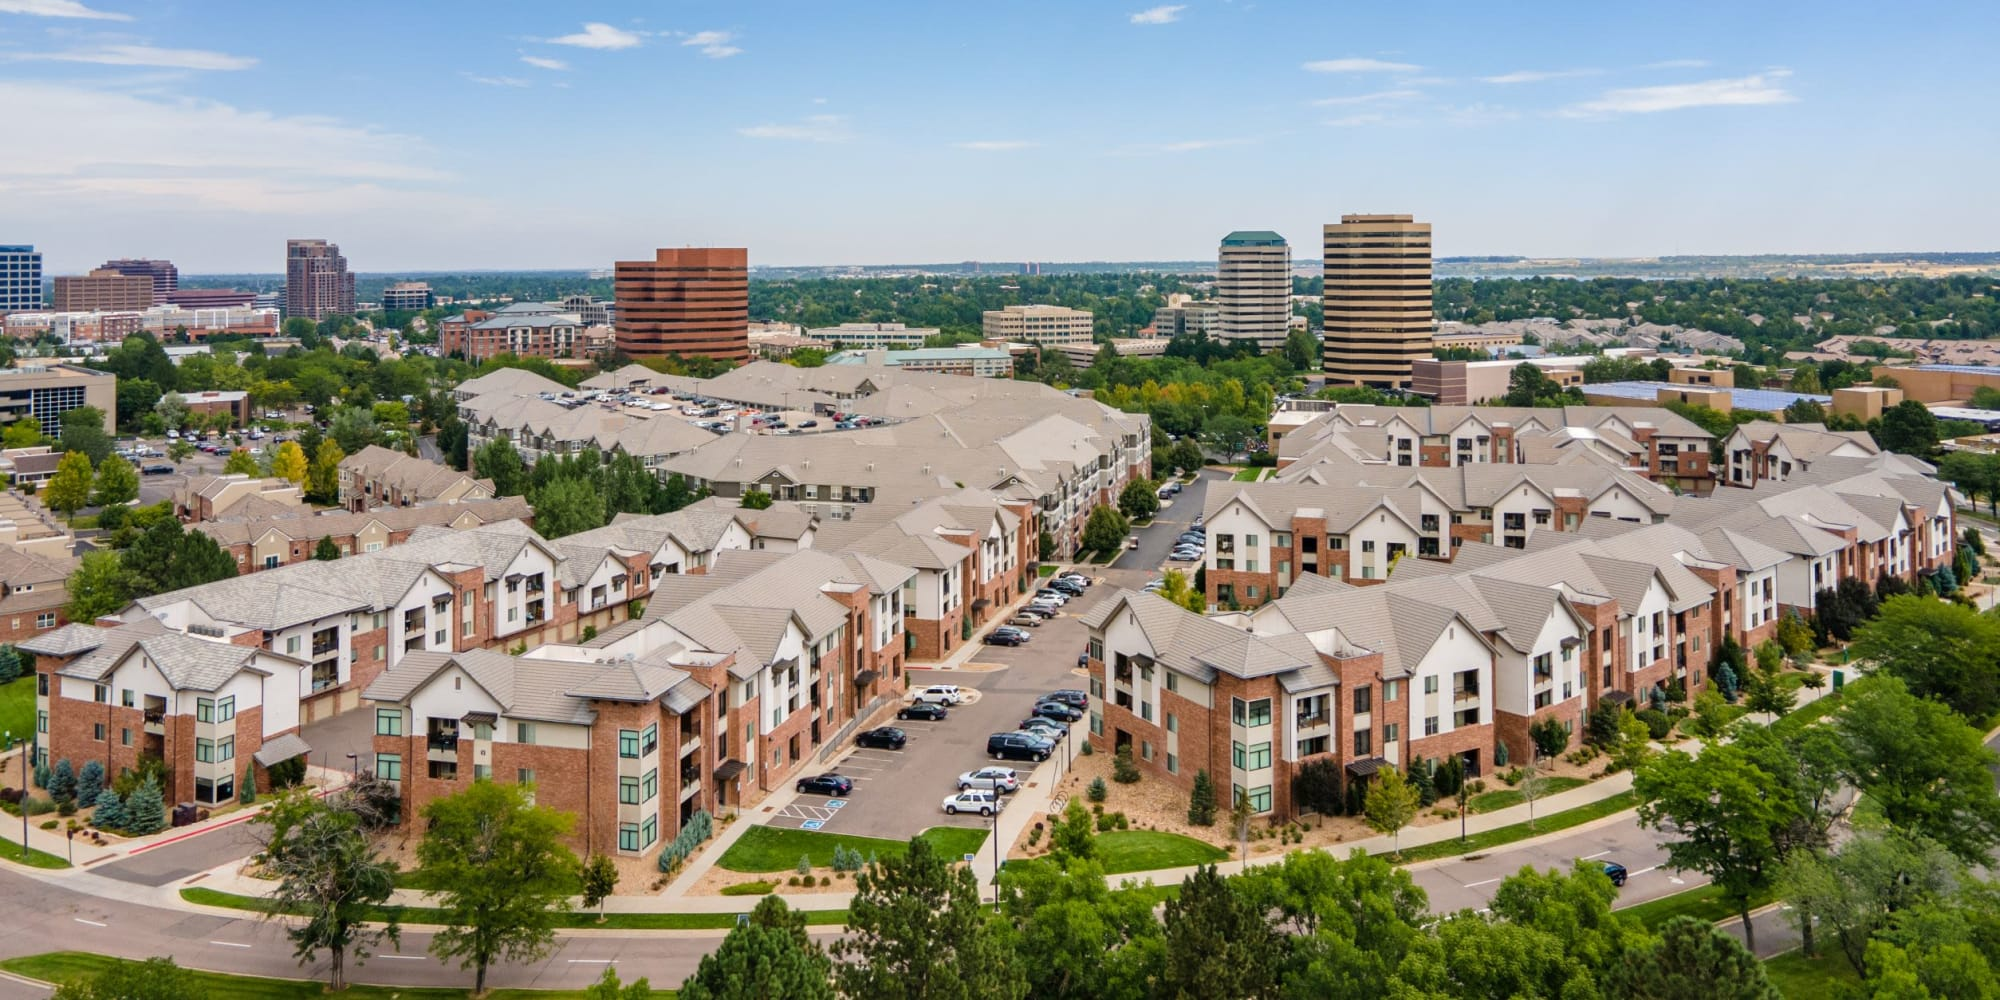 Apartments at The Parc at Greenwood Village in Greenwood Village, Colorado